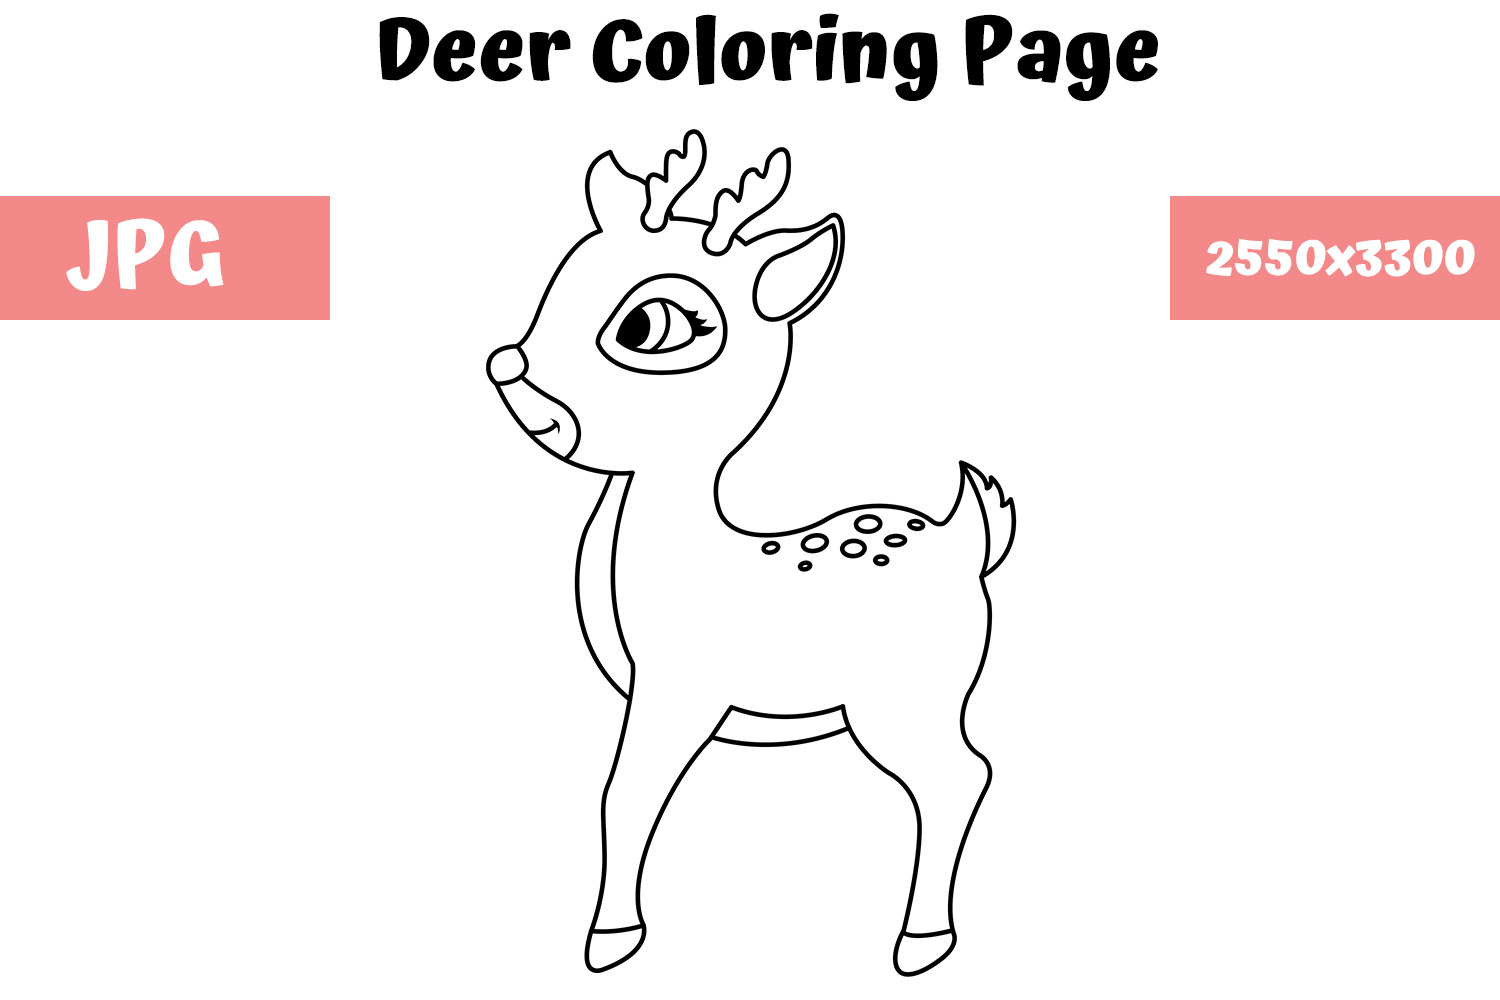 Deer Coloring Page For Kids Graphic By Mybeautifulfiles Creative Fabrica